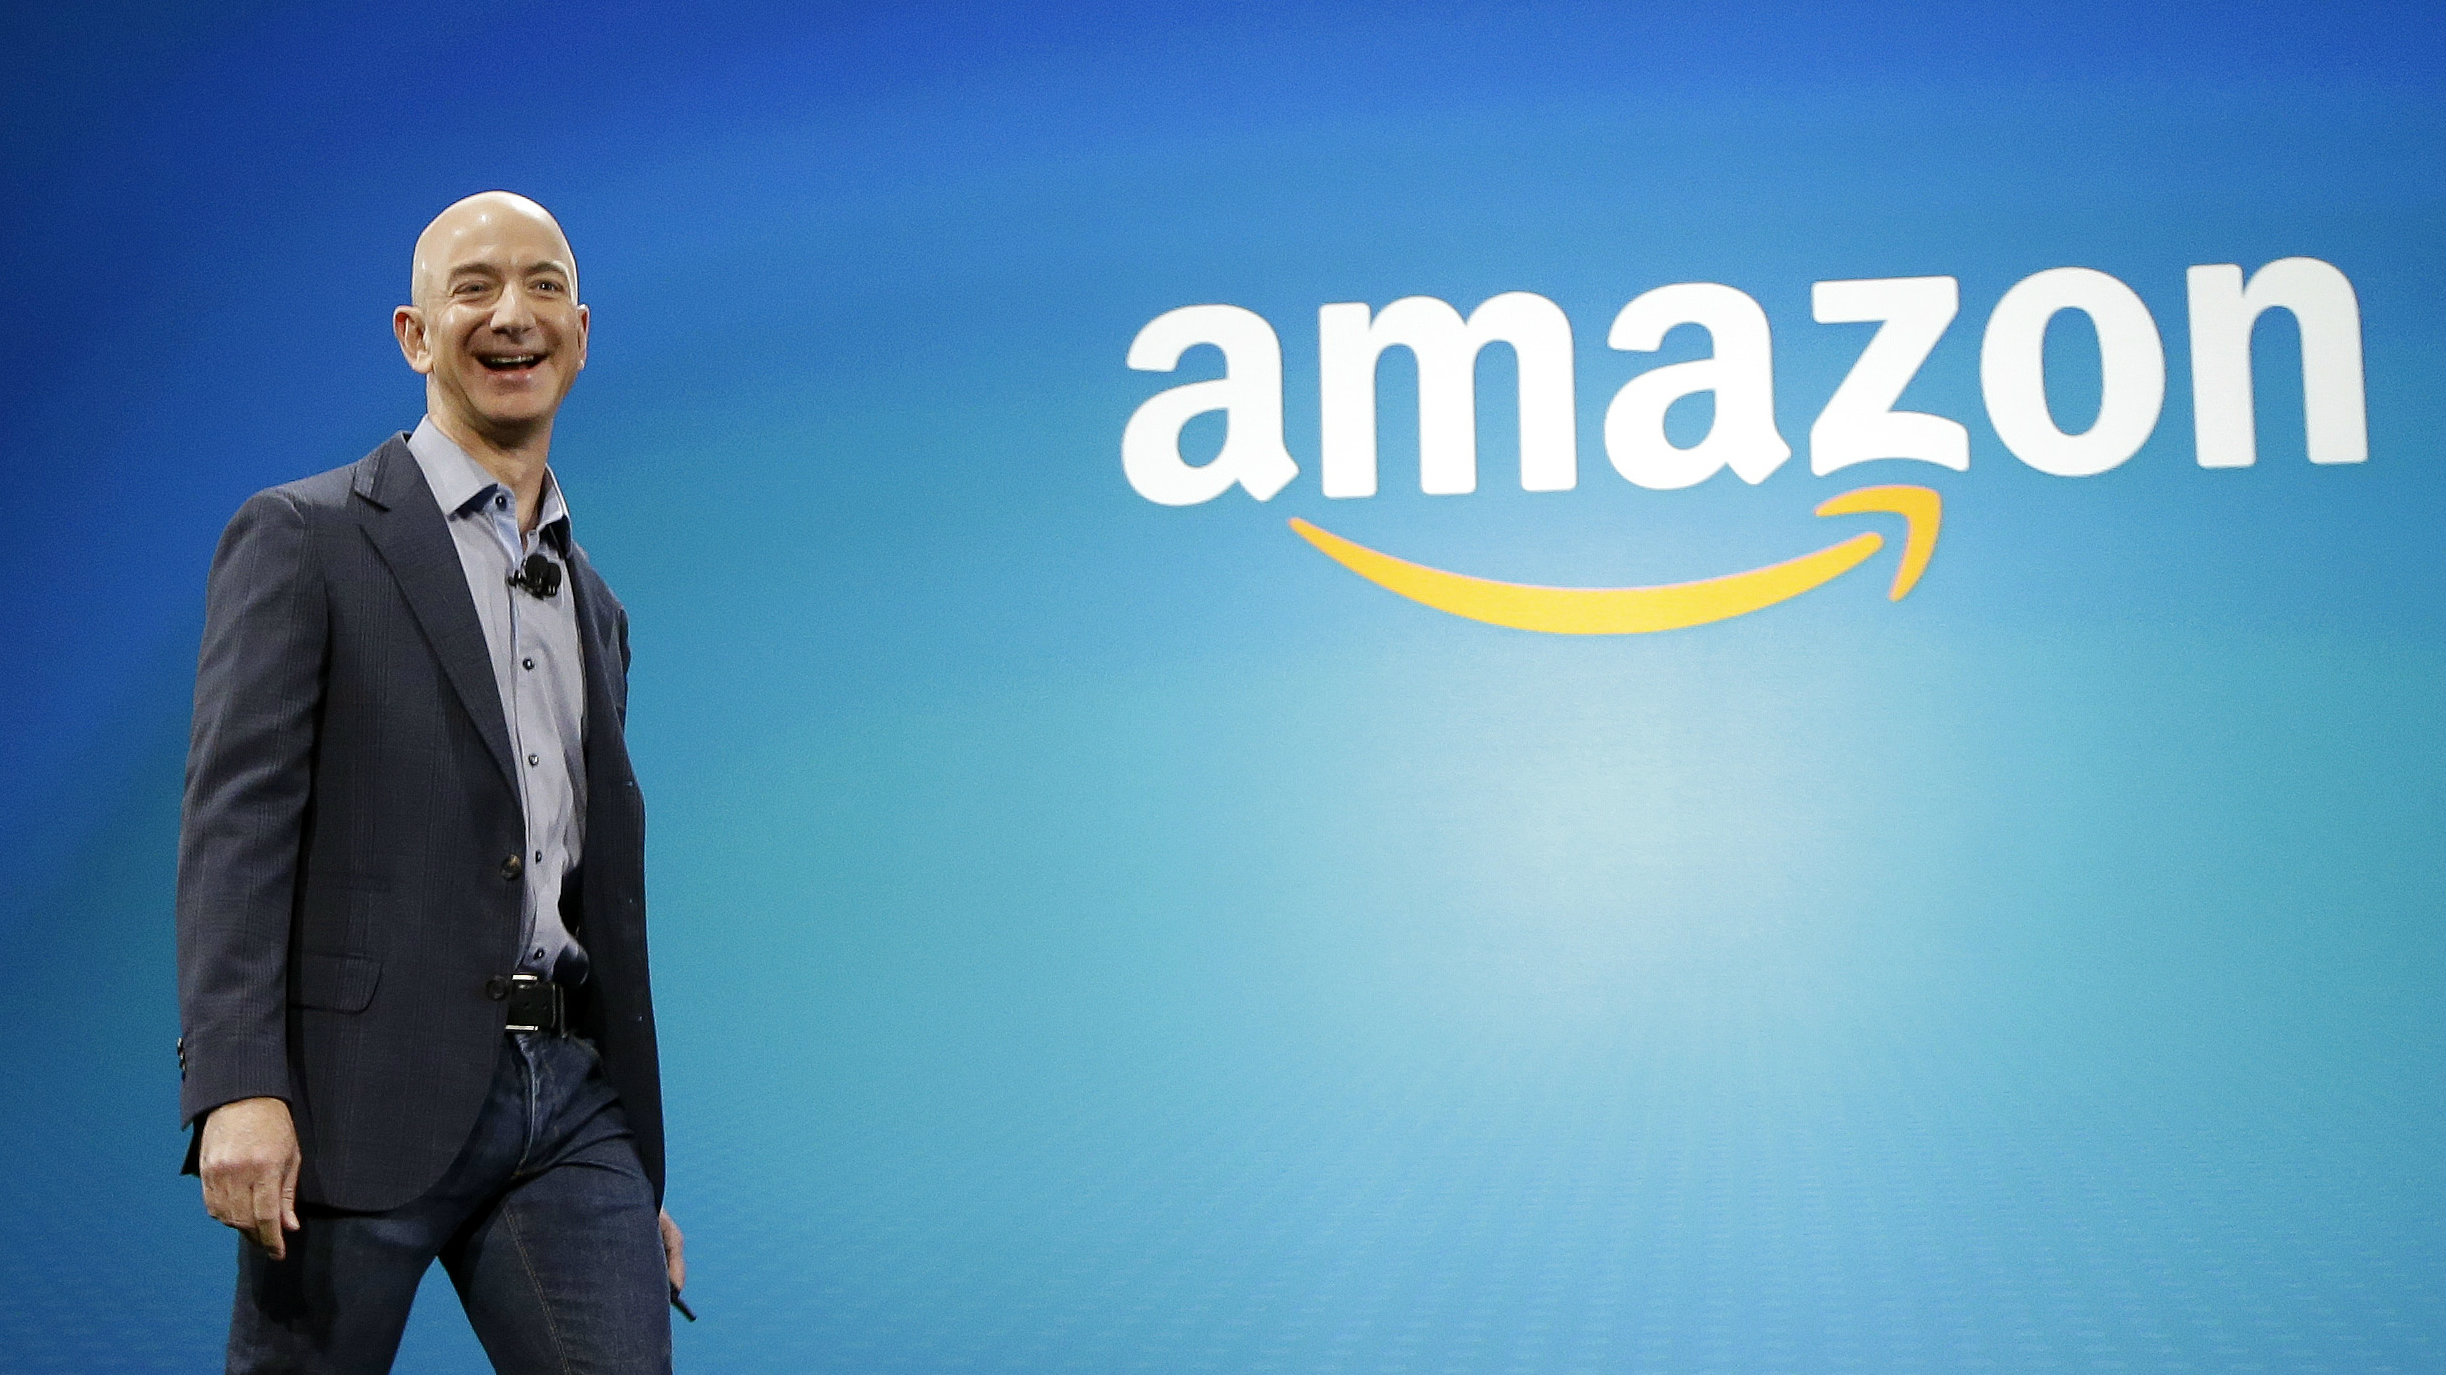 In this June 16, 2014, file photo, Amazon CEO Jeff Bezos walks onstage for the launch of the new Amazon Fire Phone, in Seattle. Technology leaders are about to come face-to-face with President-elect Donald Trump after fiercely opposing his candidacy, fearful that he would stifle innovation, curb the hiring of computer-savvy immigrants and infringe on consumers' digital privacy. On Wednesday, Dec. 14, 2016, Silicon Valley luminaries and other technology leaders are headed to Trump Tower in New York to make their peace, or press their case, with Trump and his advisers. Bezos is one of the CEOs expected to attend.